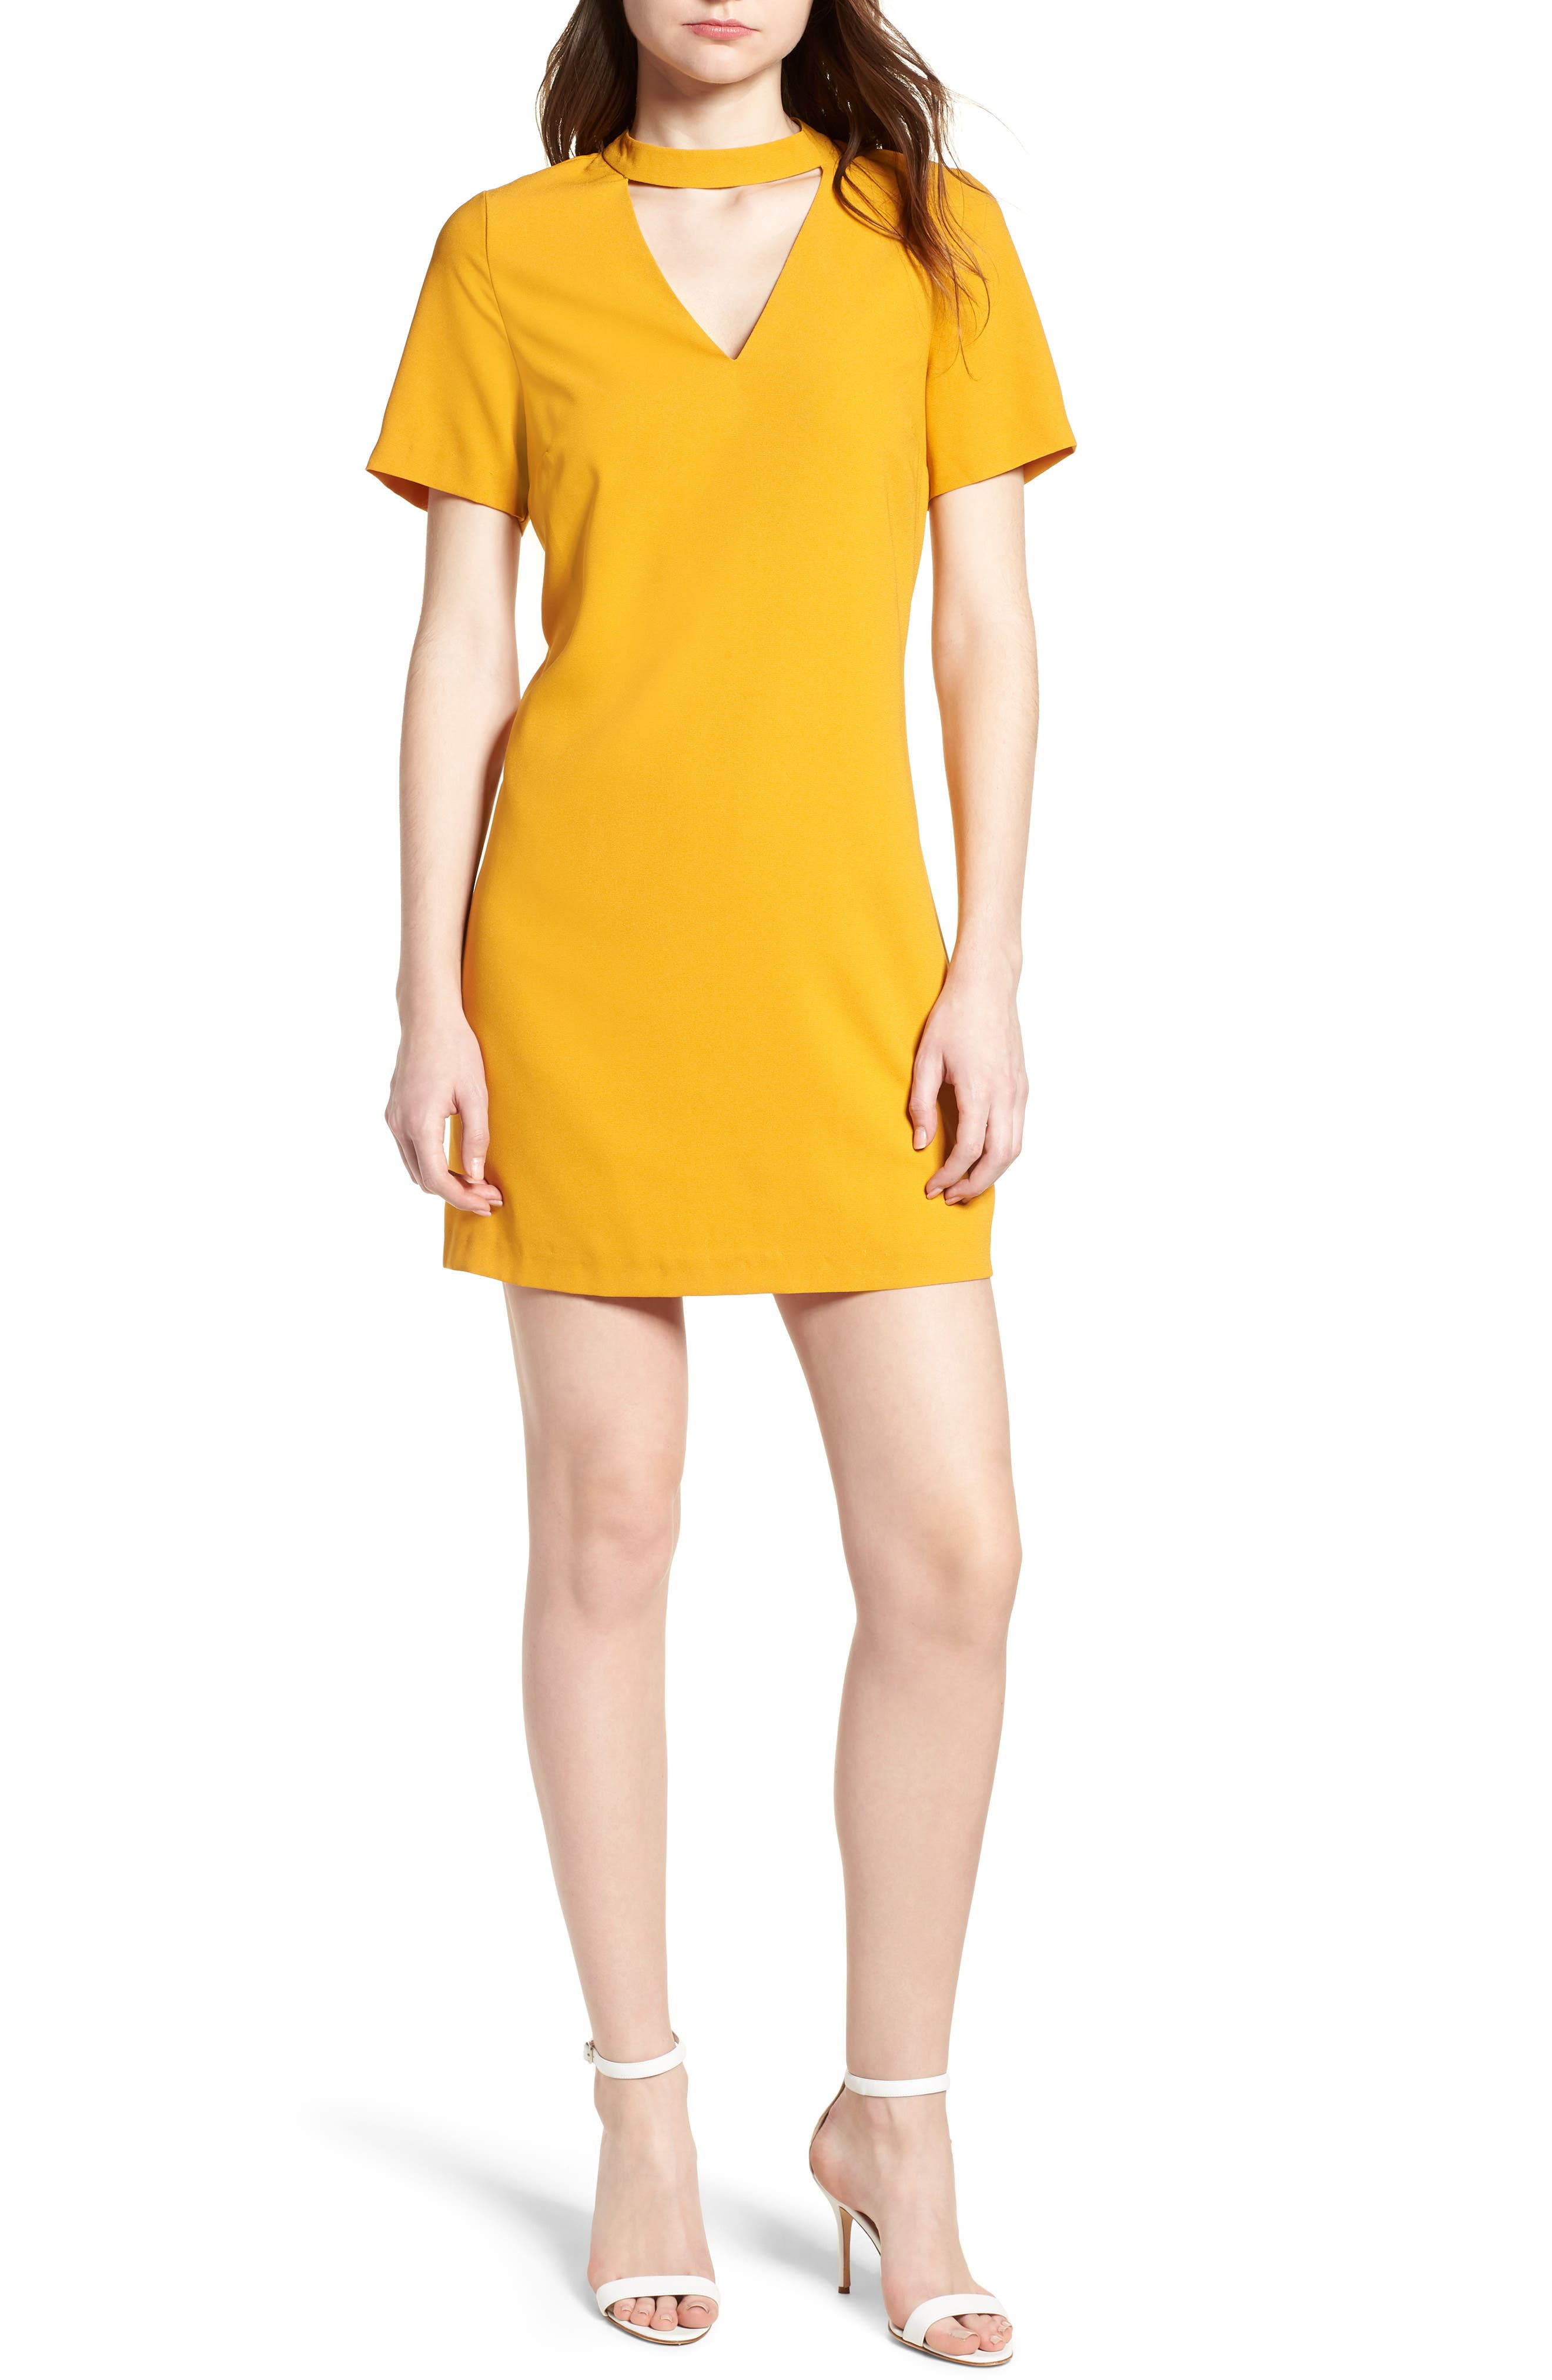 Bishop + Young Sasha Shift Dress,                         Main,                         color, Mustard